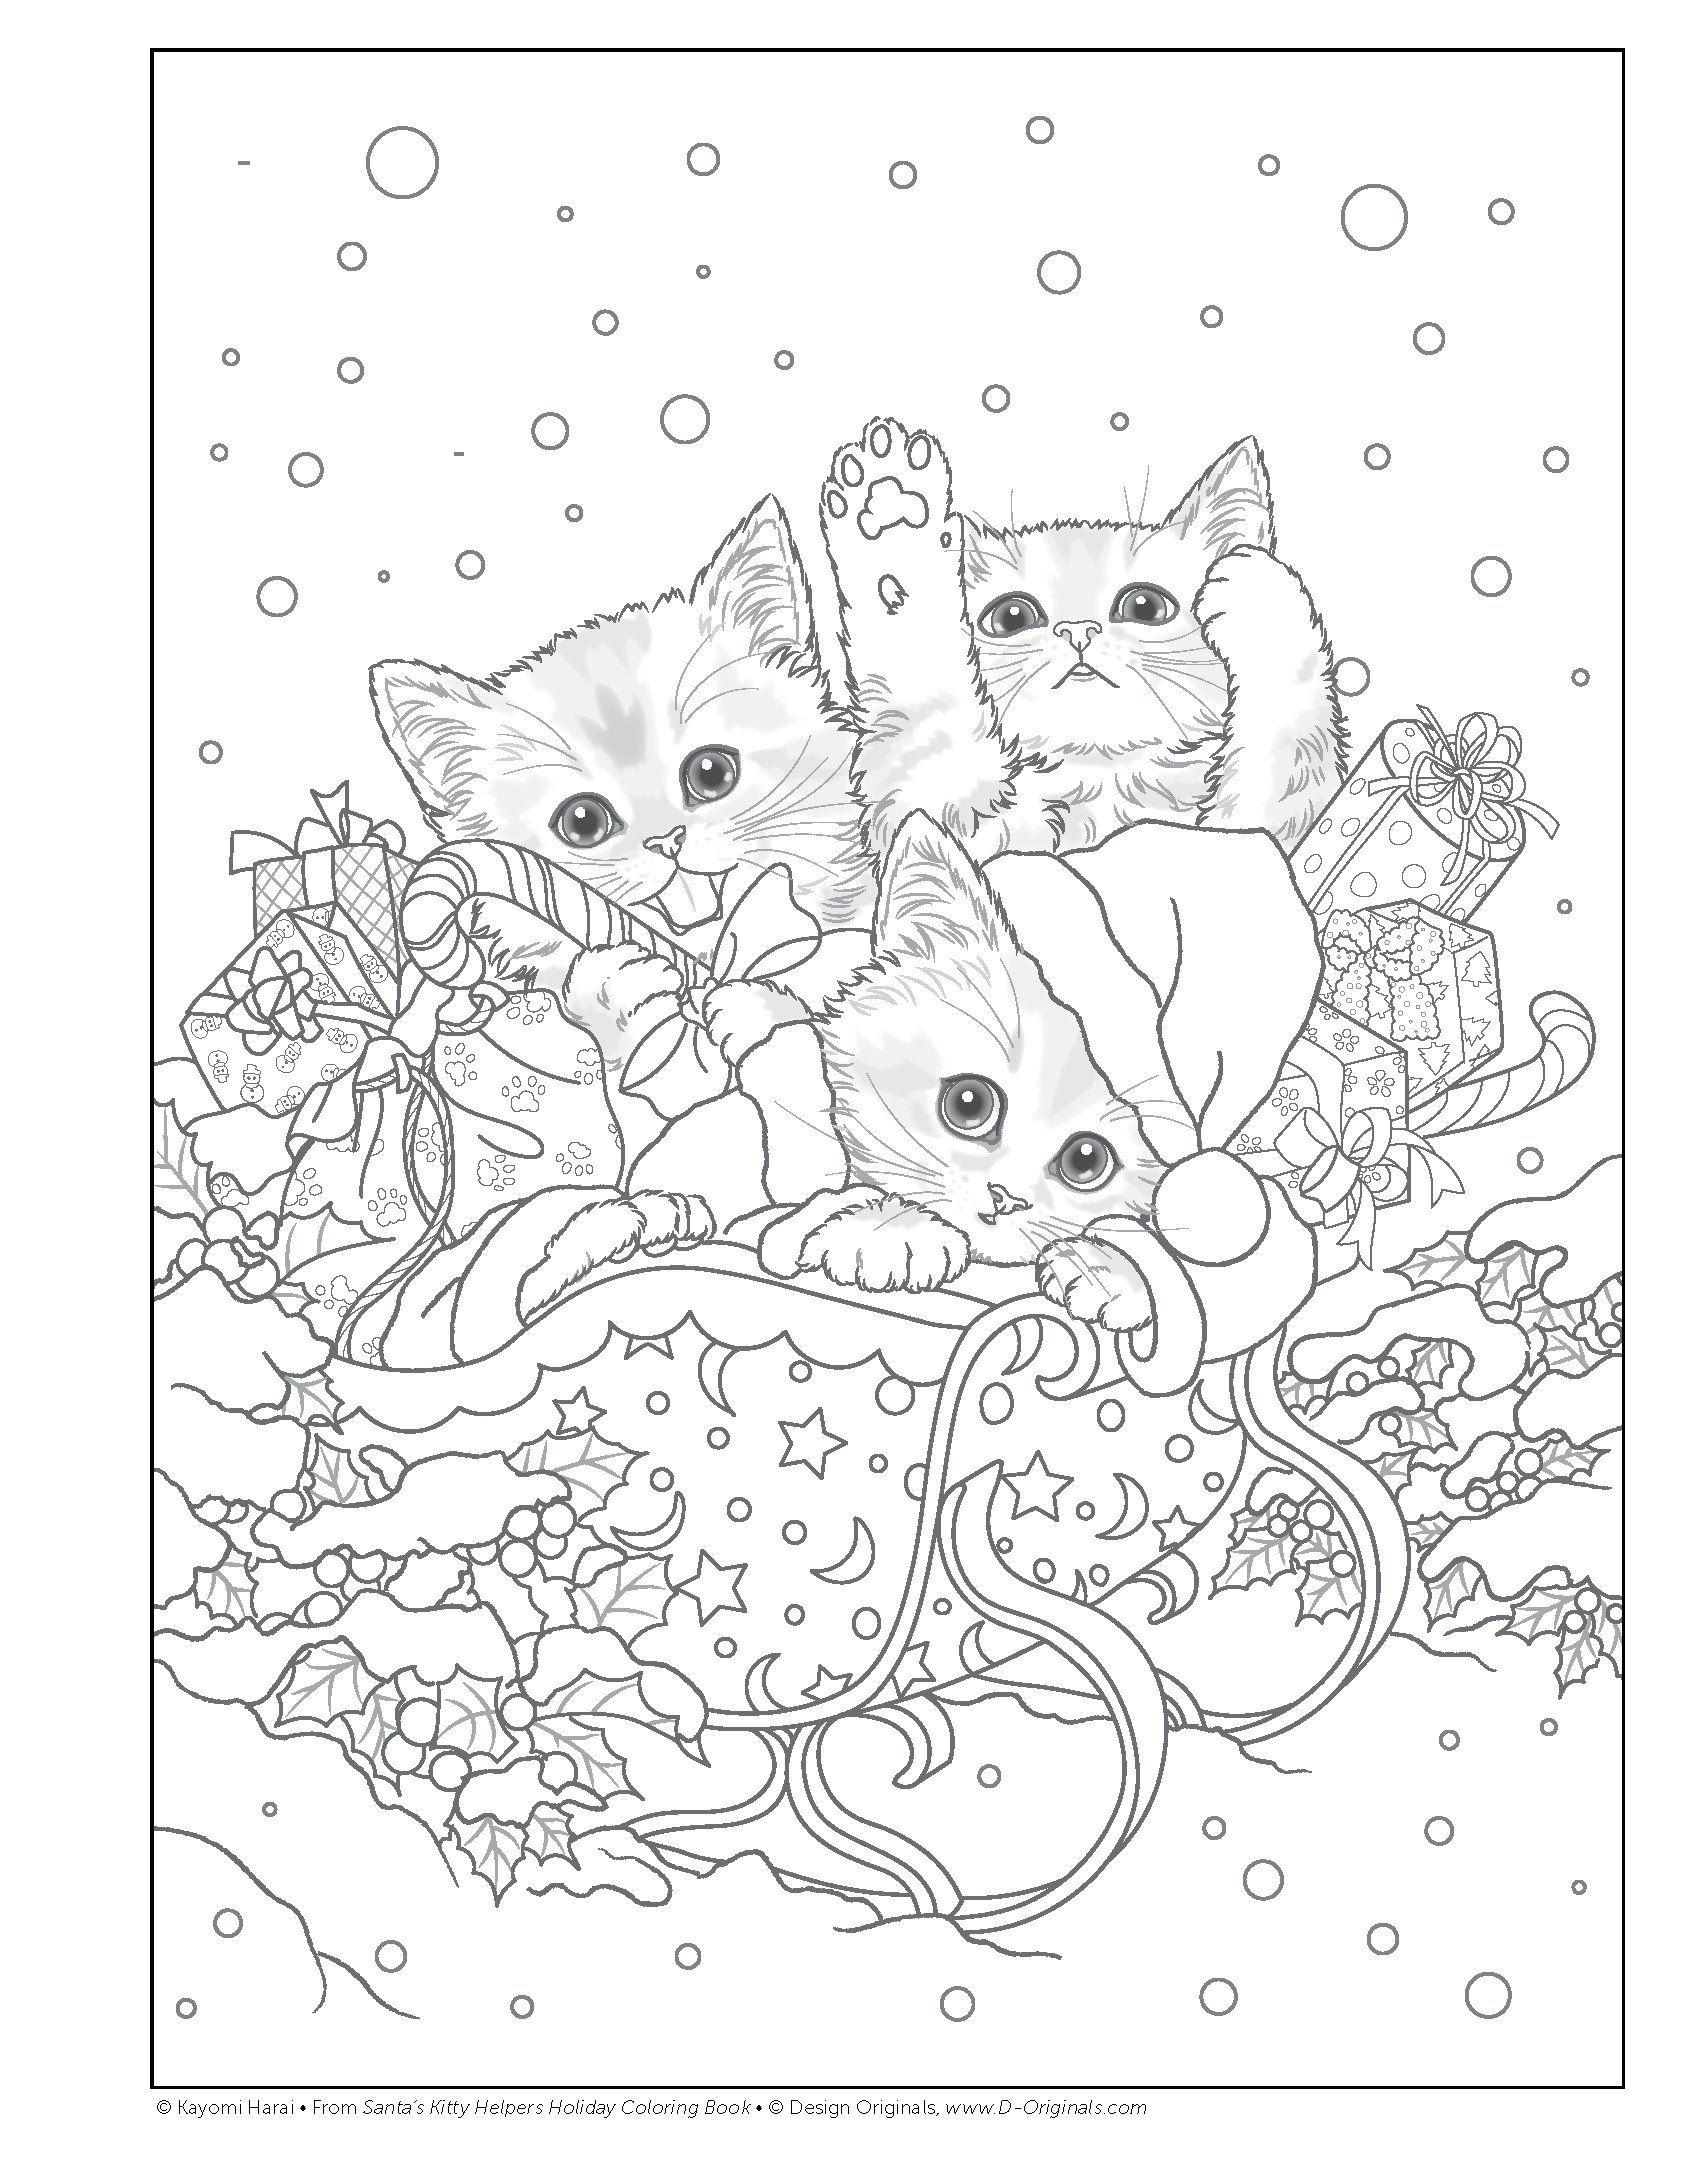 Santa S Kitty Helpers Holiday Coloring Book Design Originals